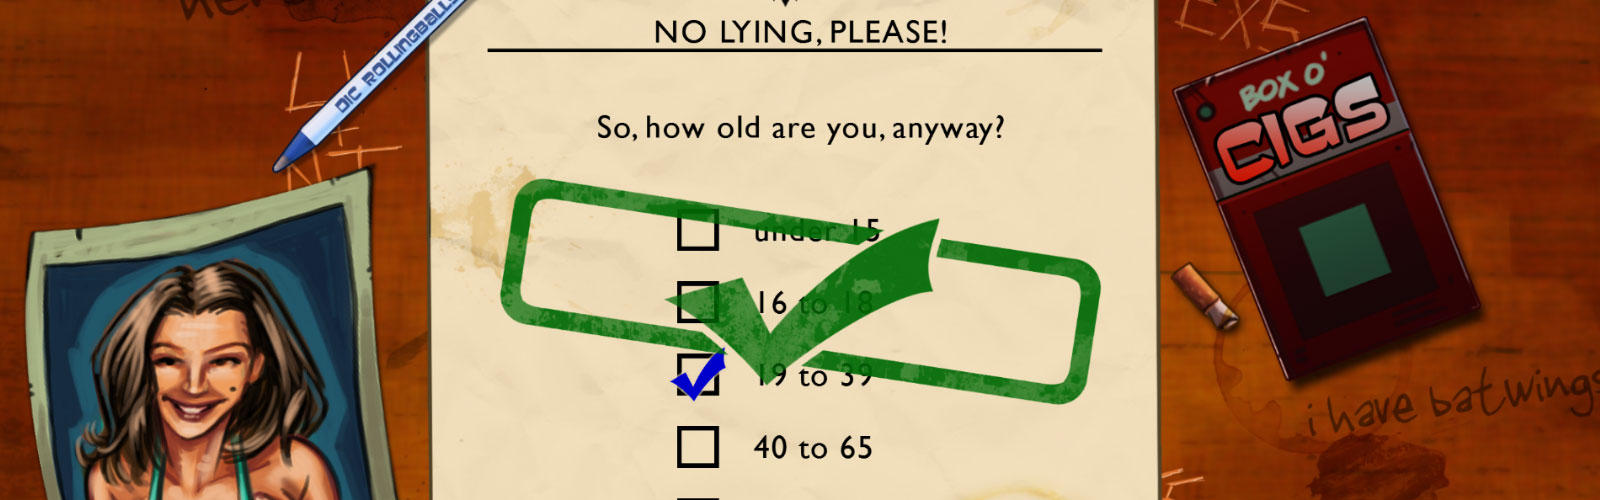 Age Verification Quiz From Leisure Suit Larry In The Land Of The Lounge Lizards Chronological age doesn't always correlate with emotional age! classic gaming